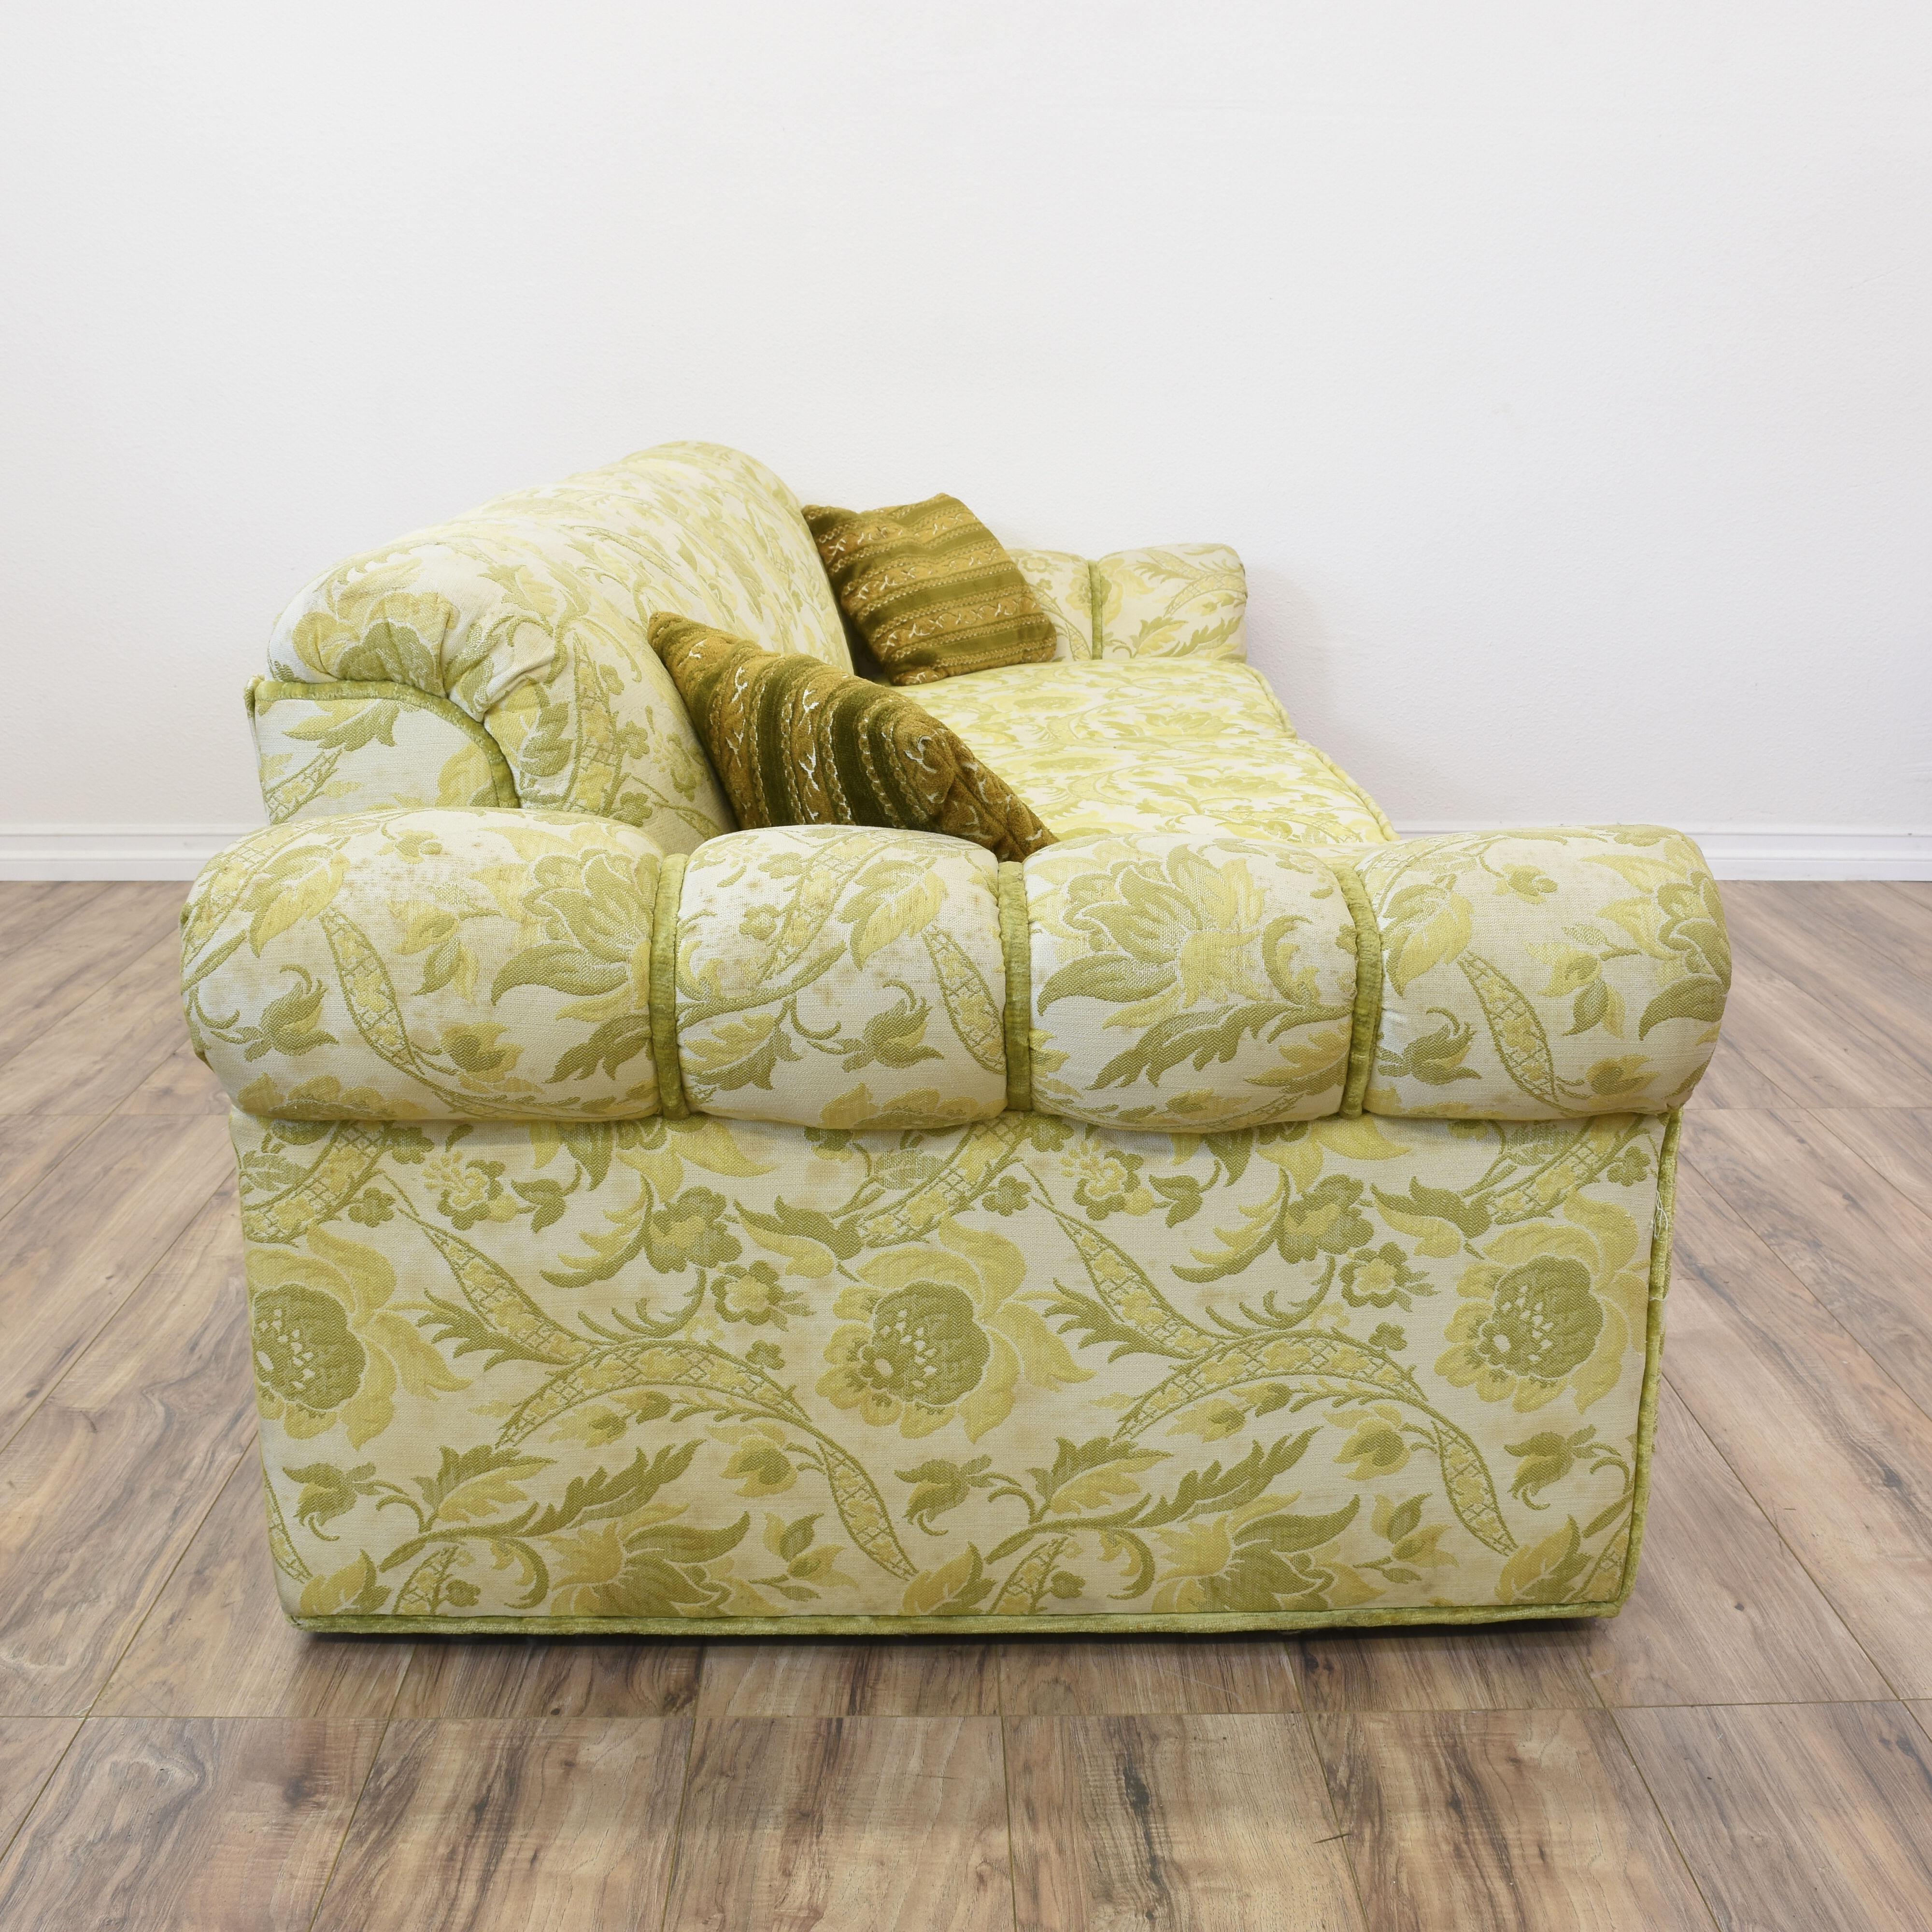 green floral sofa how to build a in minecraft pe long beige and paisley print loveseat